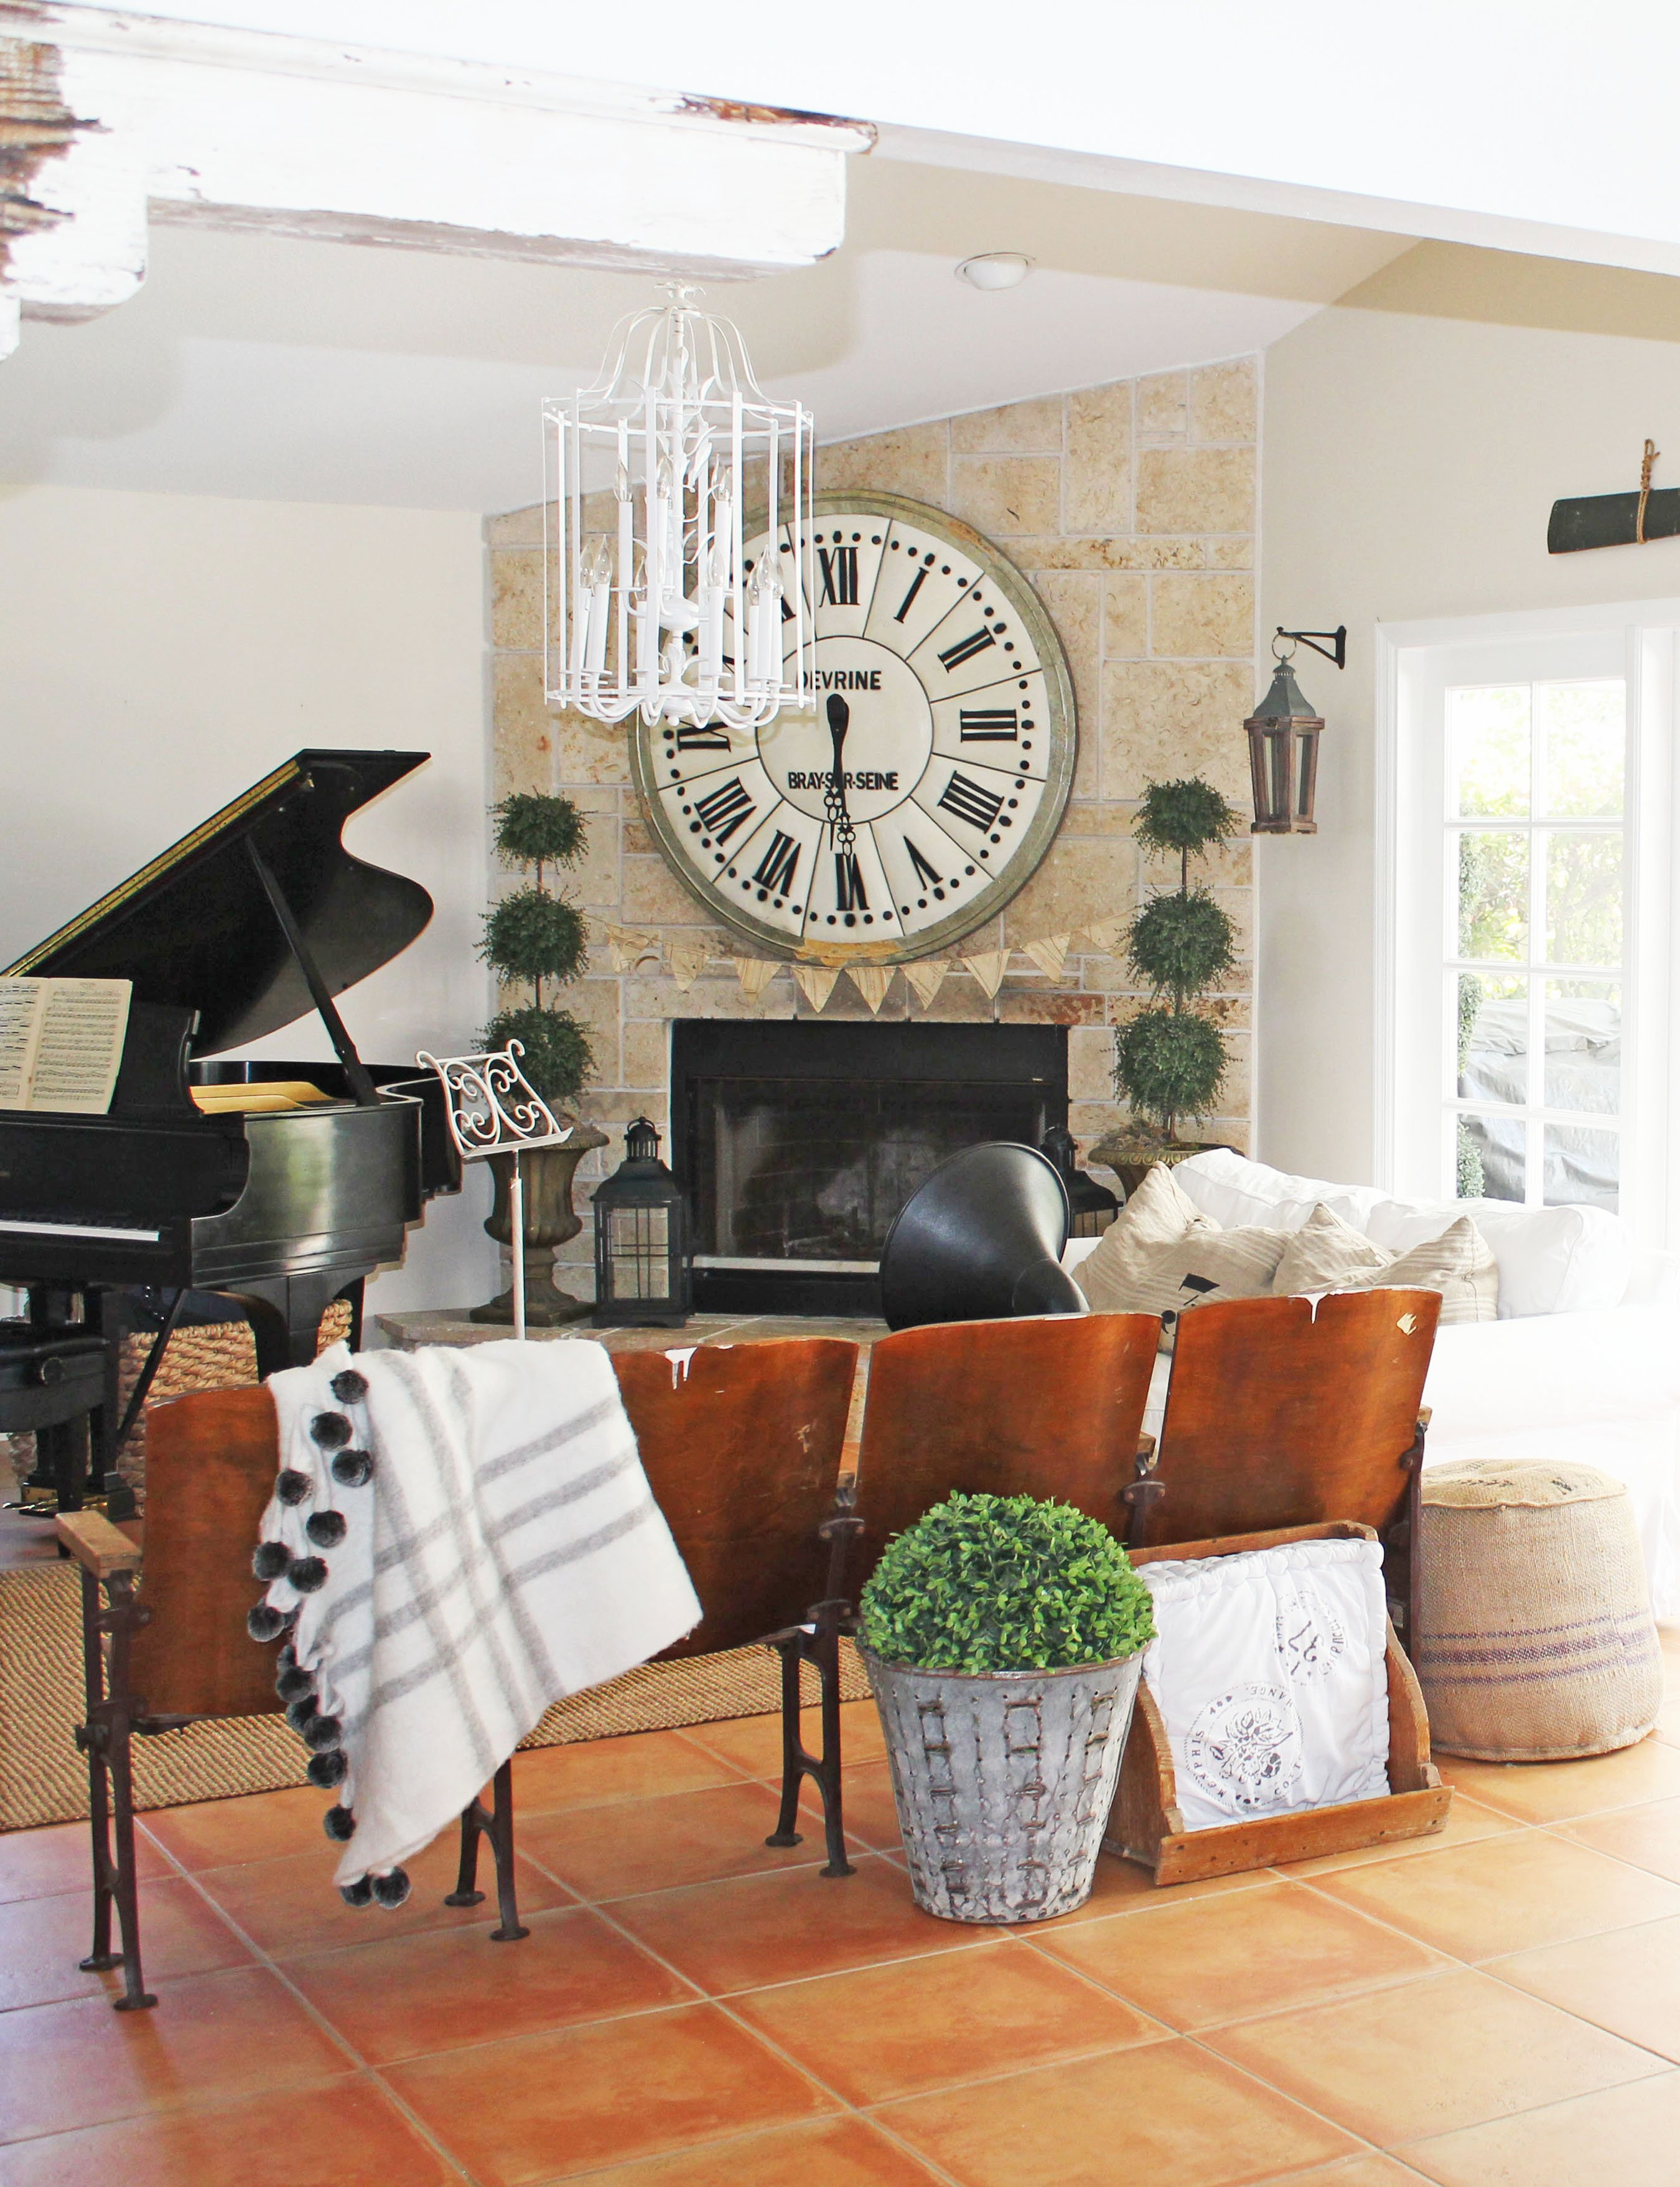 Coastal Farmhouse Meets French Country A Home Tour In The New